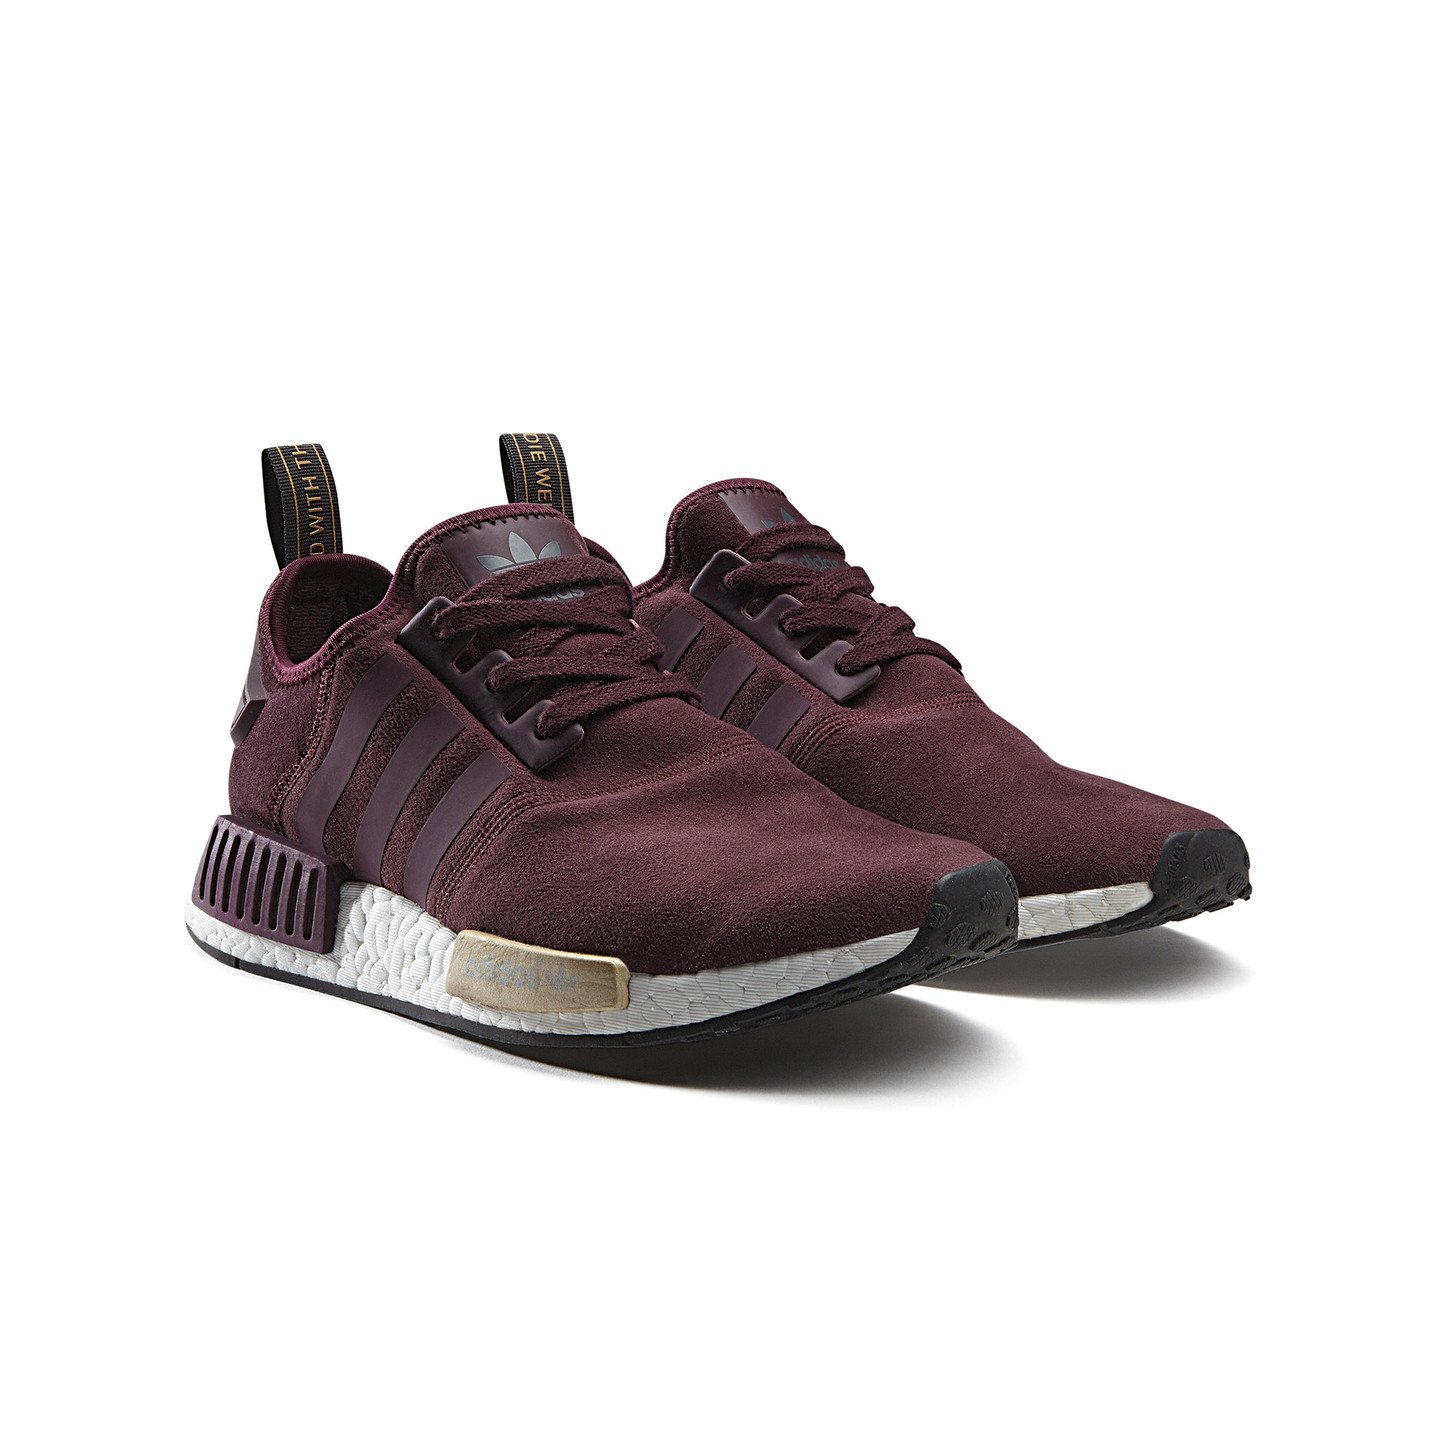 e1a67f92cd518 adidas Womens NMD R1 W Size 8 S75231 UK 6.5 F 40  Amazon.co.uk  Shoes   Bags